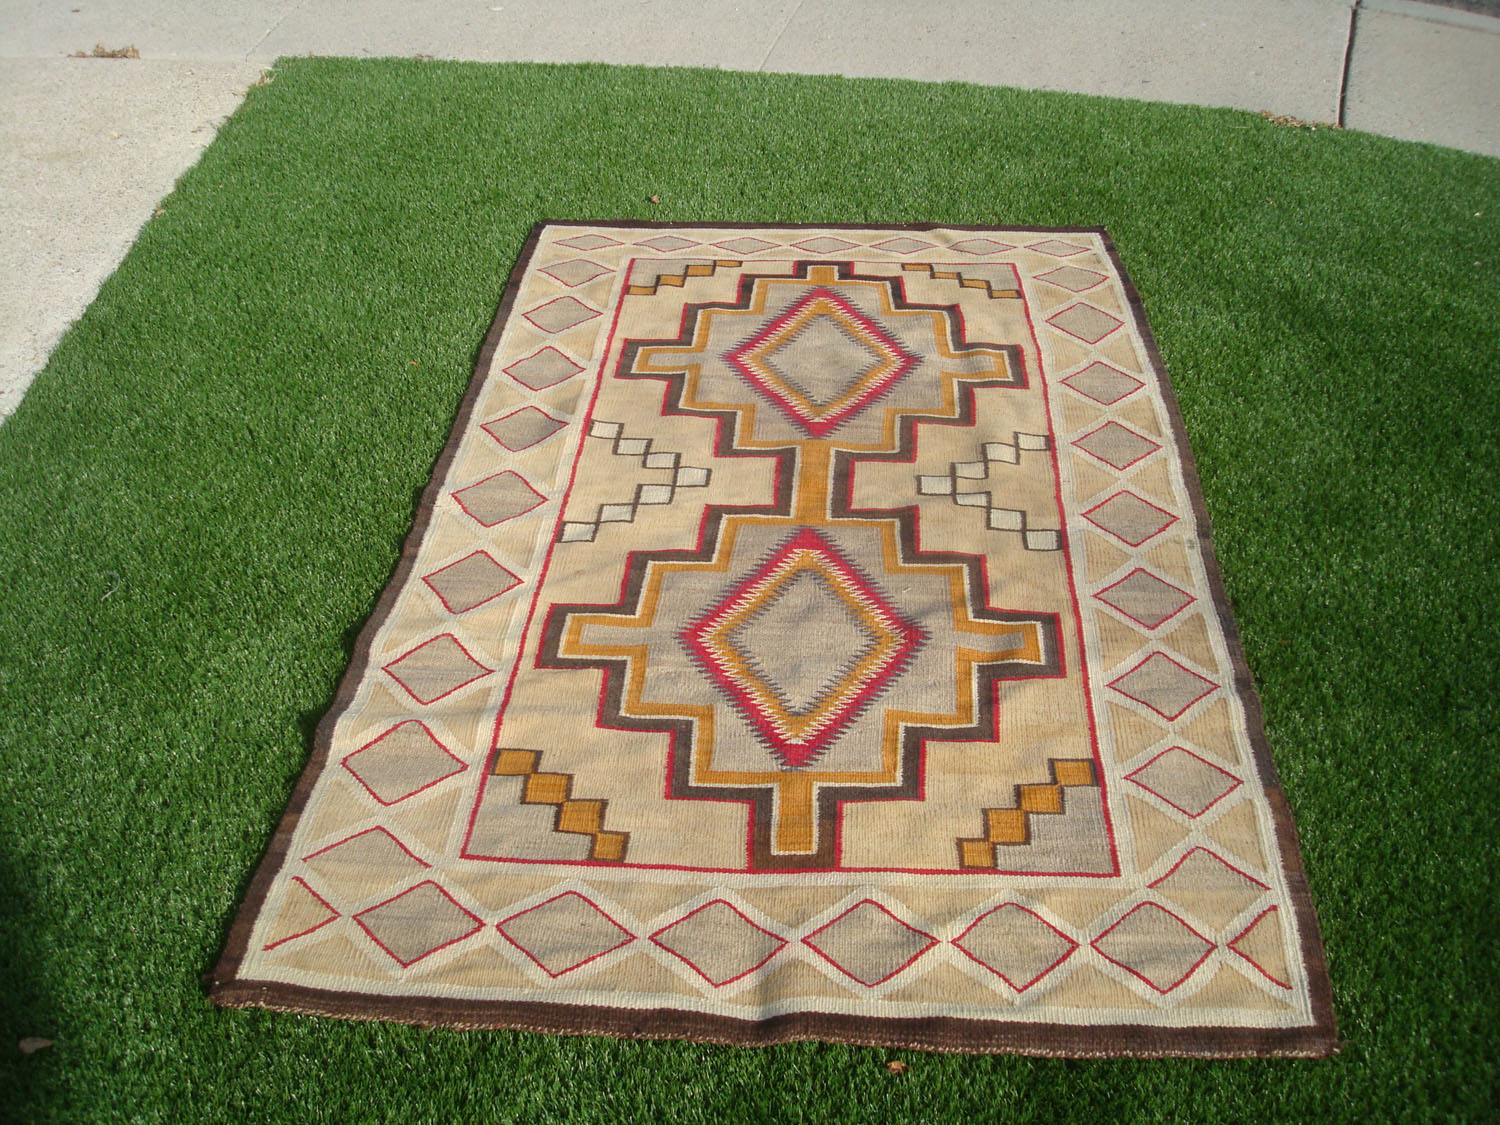 native american indian vintage textiles and navajo textiles and rugs a beautiful red mesa